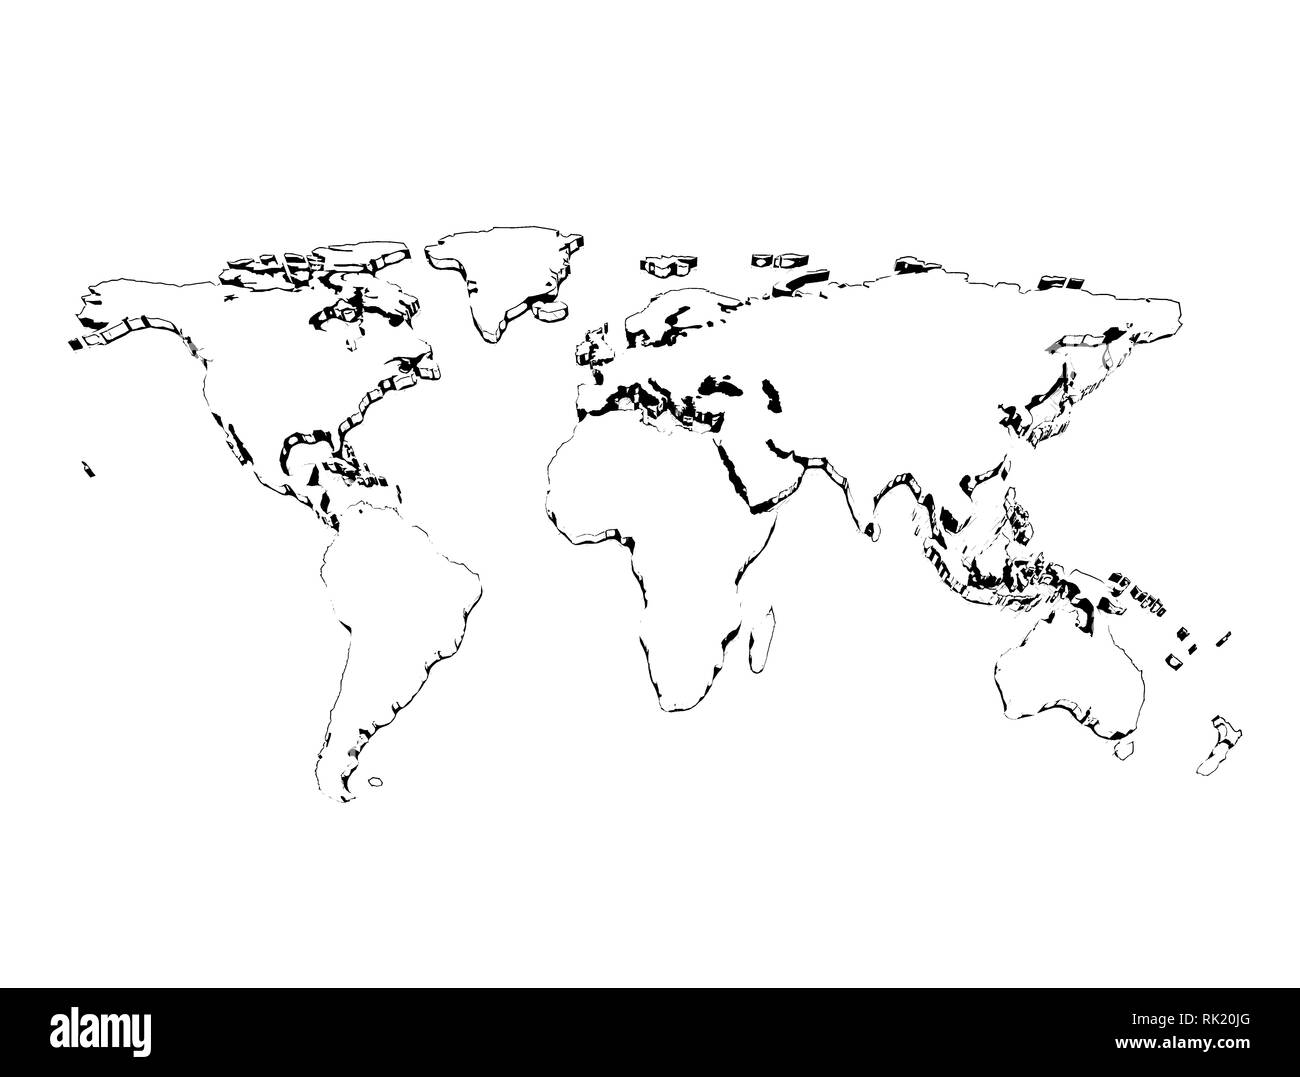 Pencil sketch world map 3d isolated on white background 3d illustration stock image